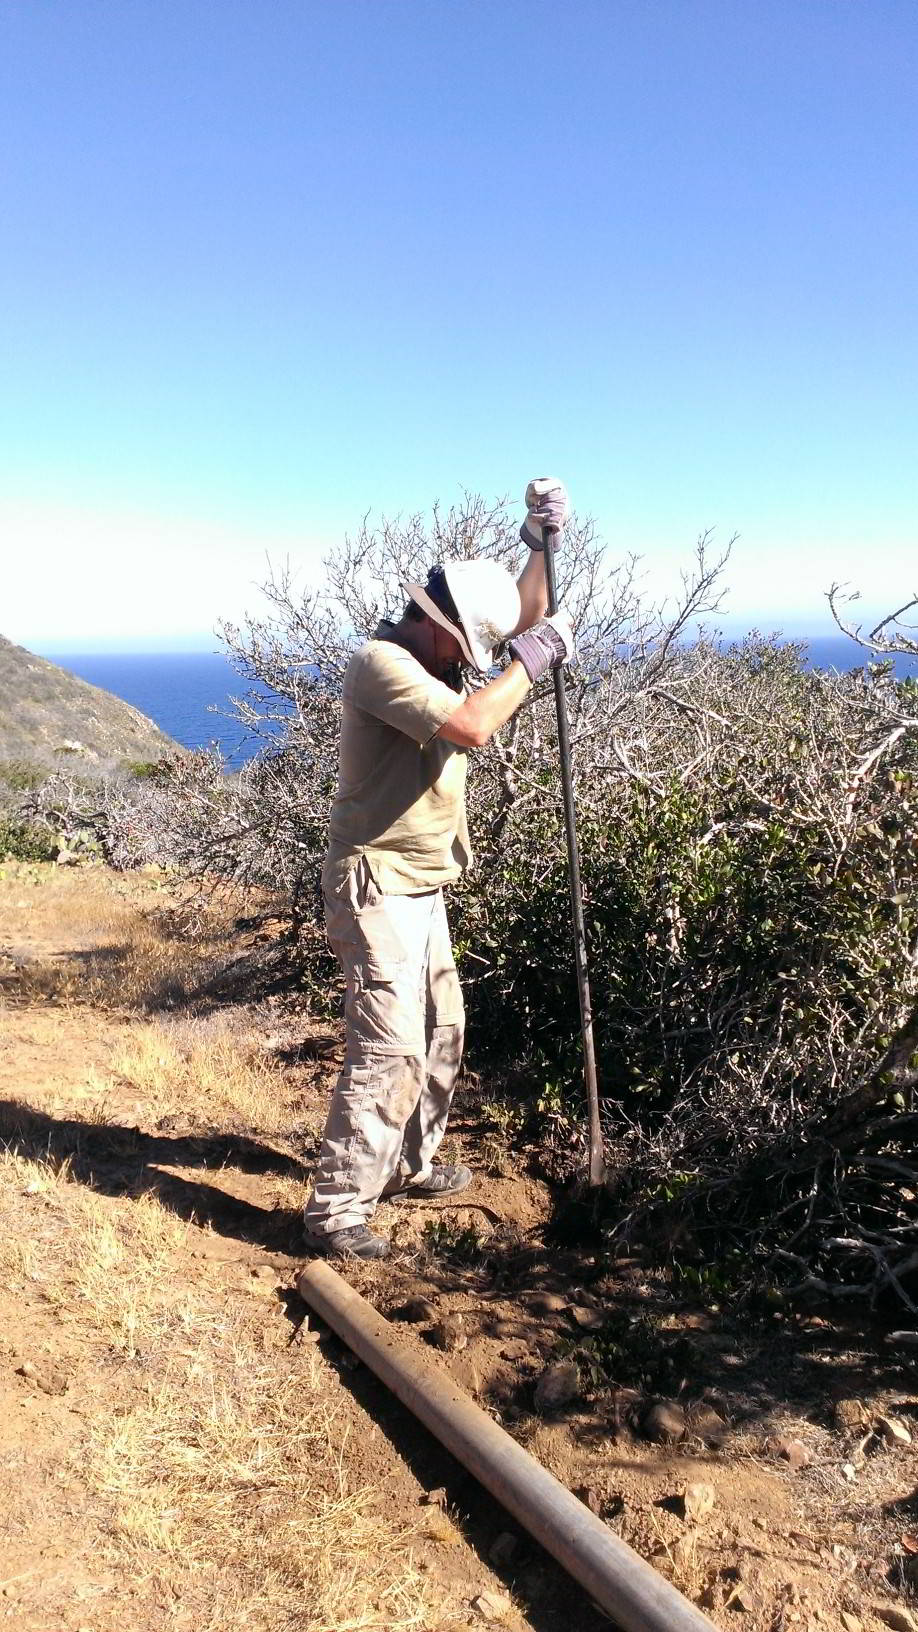 Digging a hole for a fence post, Catalina Island, California